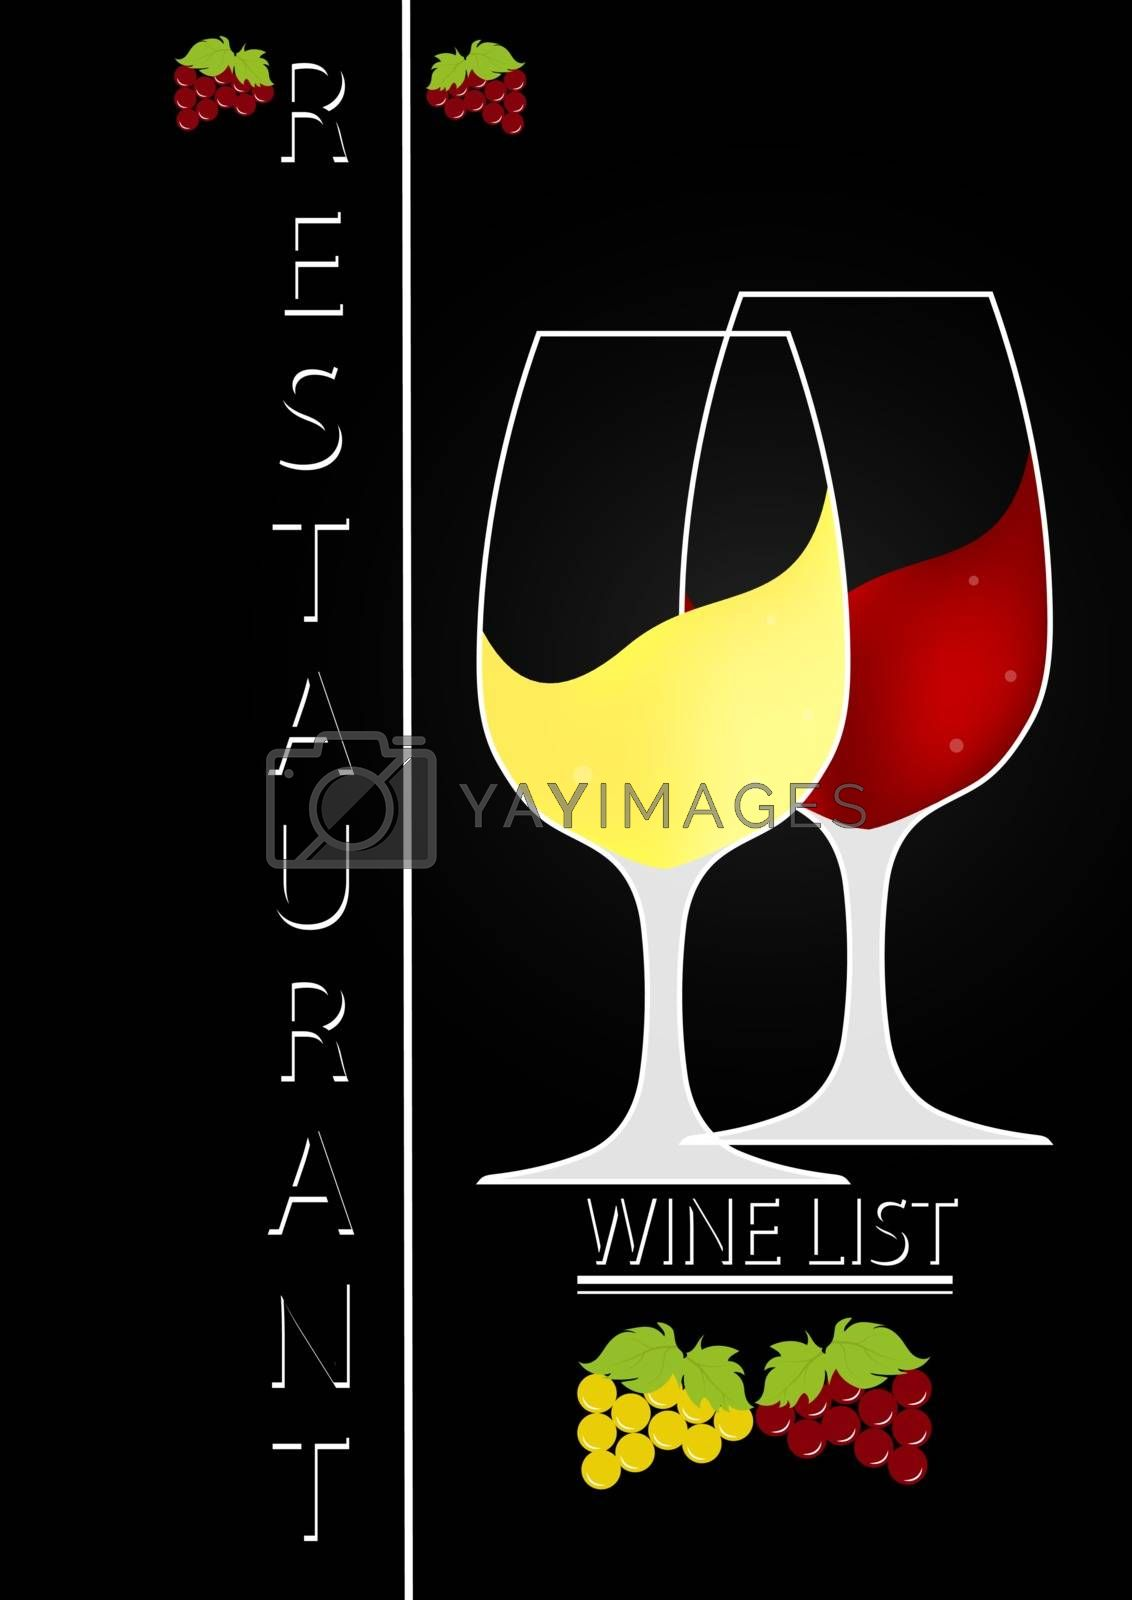 Royalty free image of Logo design for wine list of a restaurant or bar by Grommik